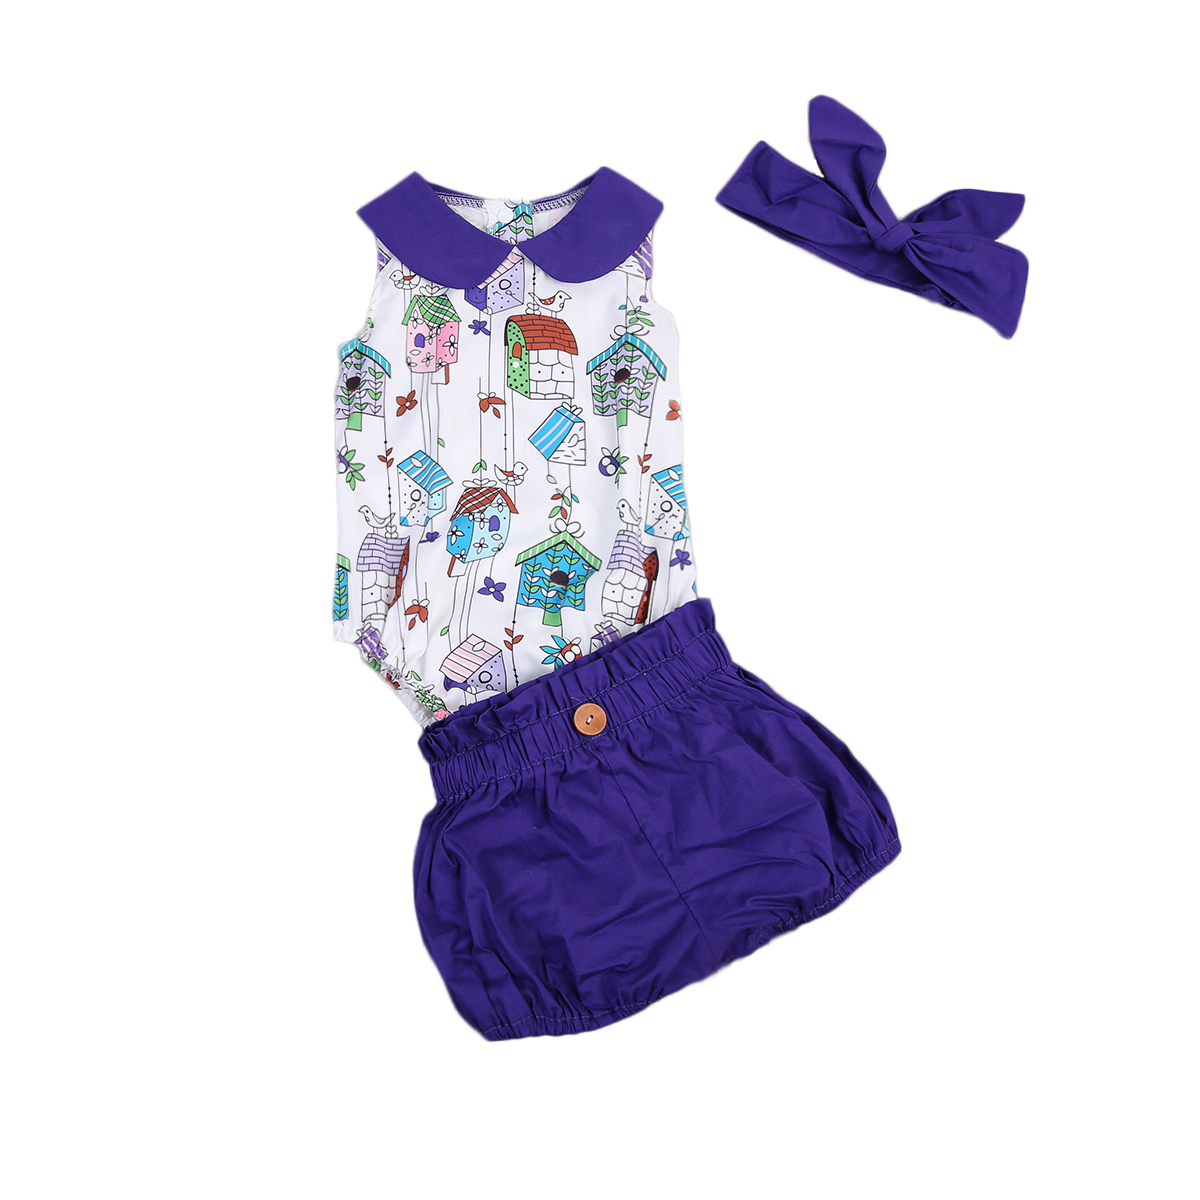 Cute Infant Baby Kids Girls Clothes Top Romper T-shirt Headband Pants Outfit Set Summer Clothing Toddler Girl 2PCS Clothing Set fashion 2pcs set newborn baby girls jumpsuit toddler girls flower pattern outfit clothes romper bodysuit pants